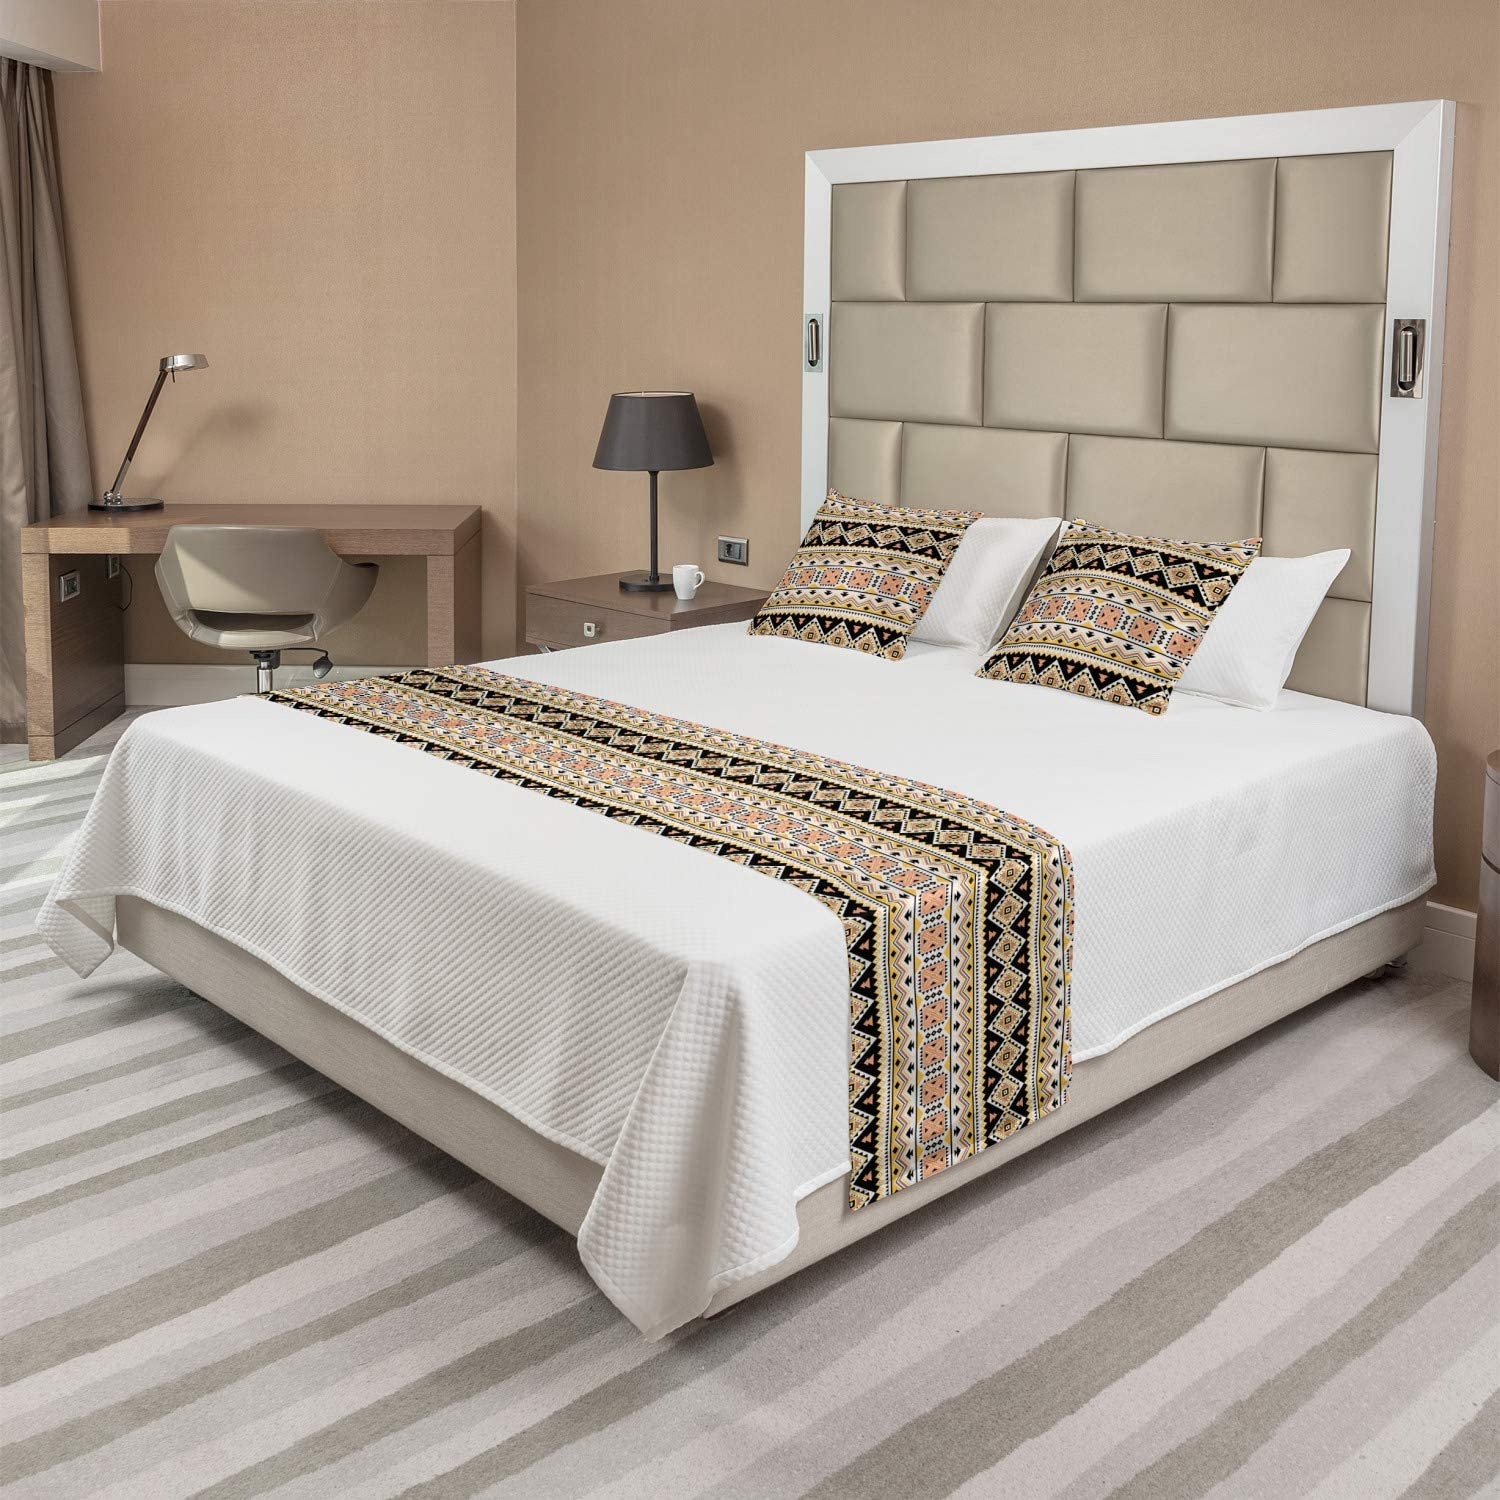 Ambesonne Aztec Bed Runner Set Abstract Ranking TOP17 Repeating Triangles Tri Free shipping on posting reviews